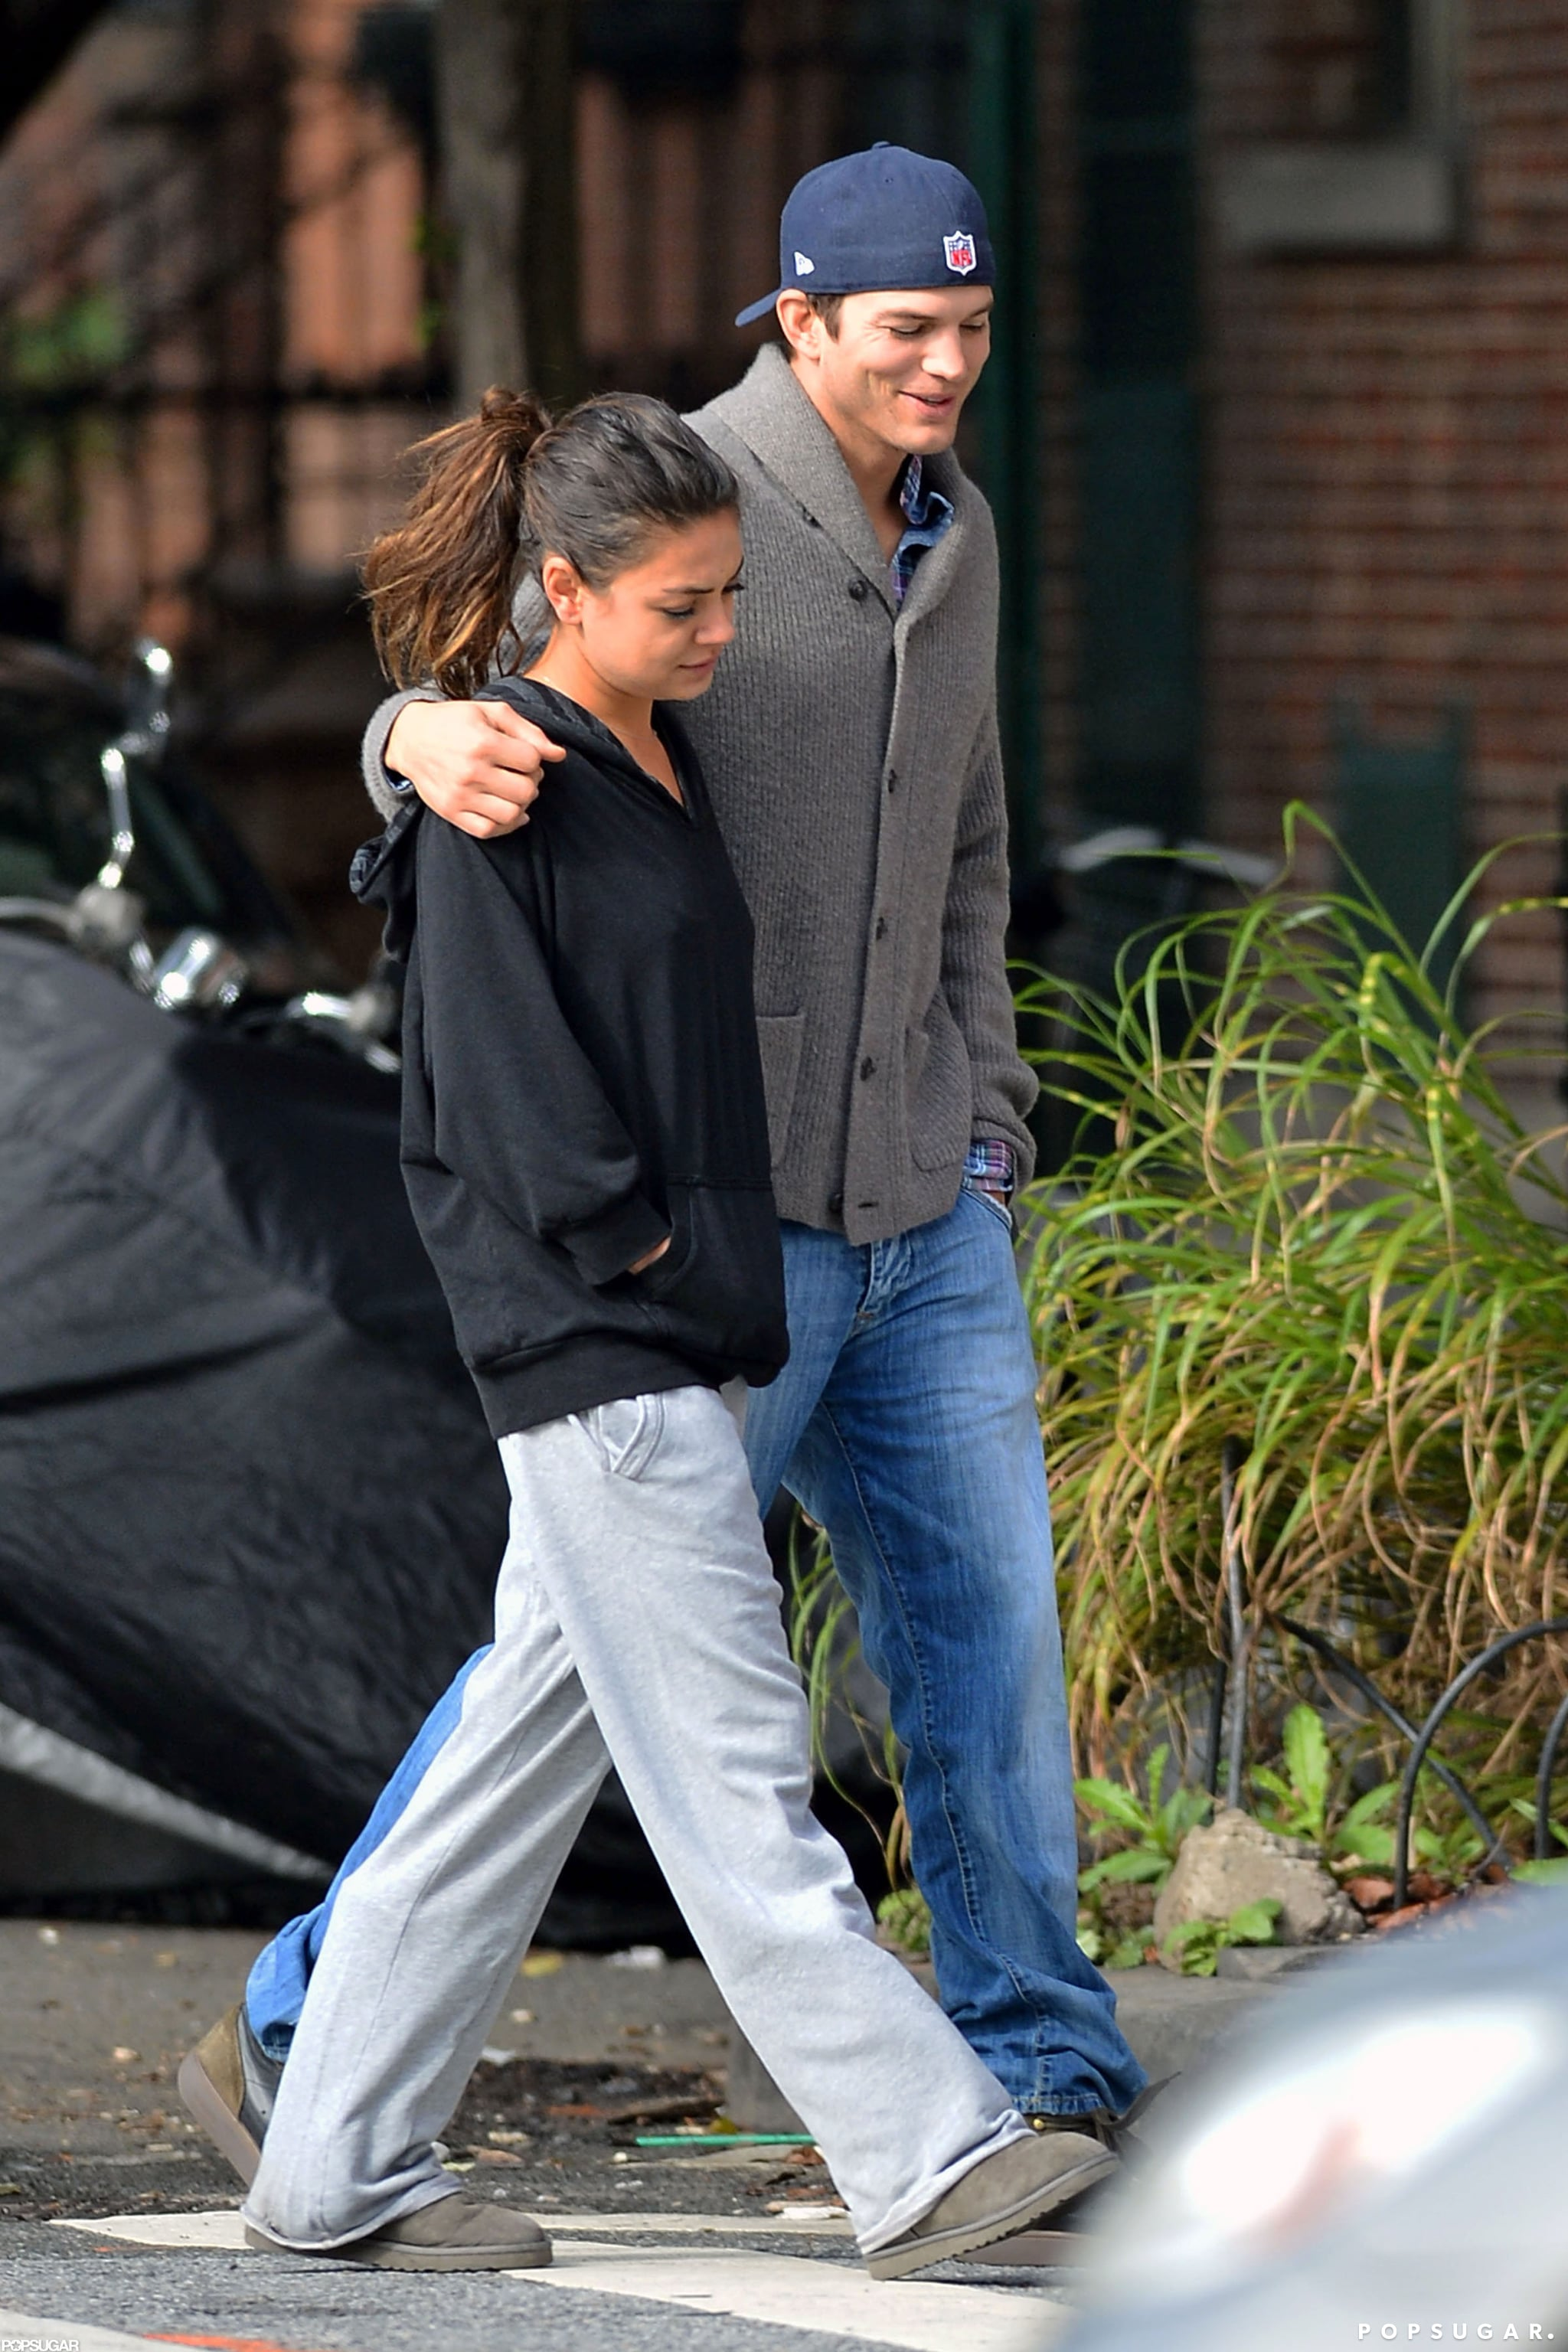 Mila Kunis and Ashton Kutcher stuck together in NYC.